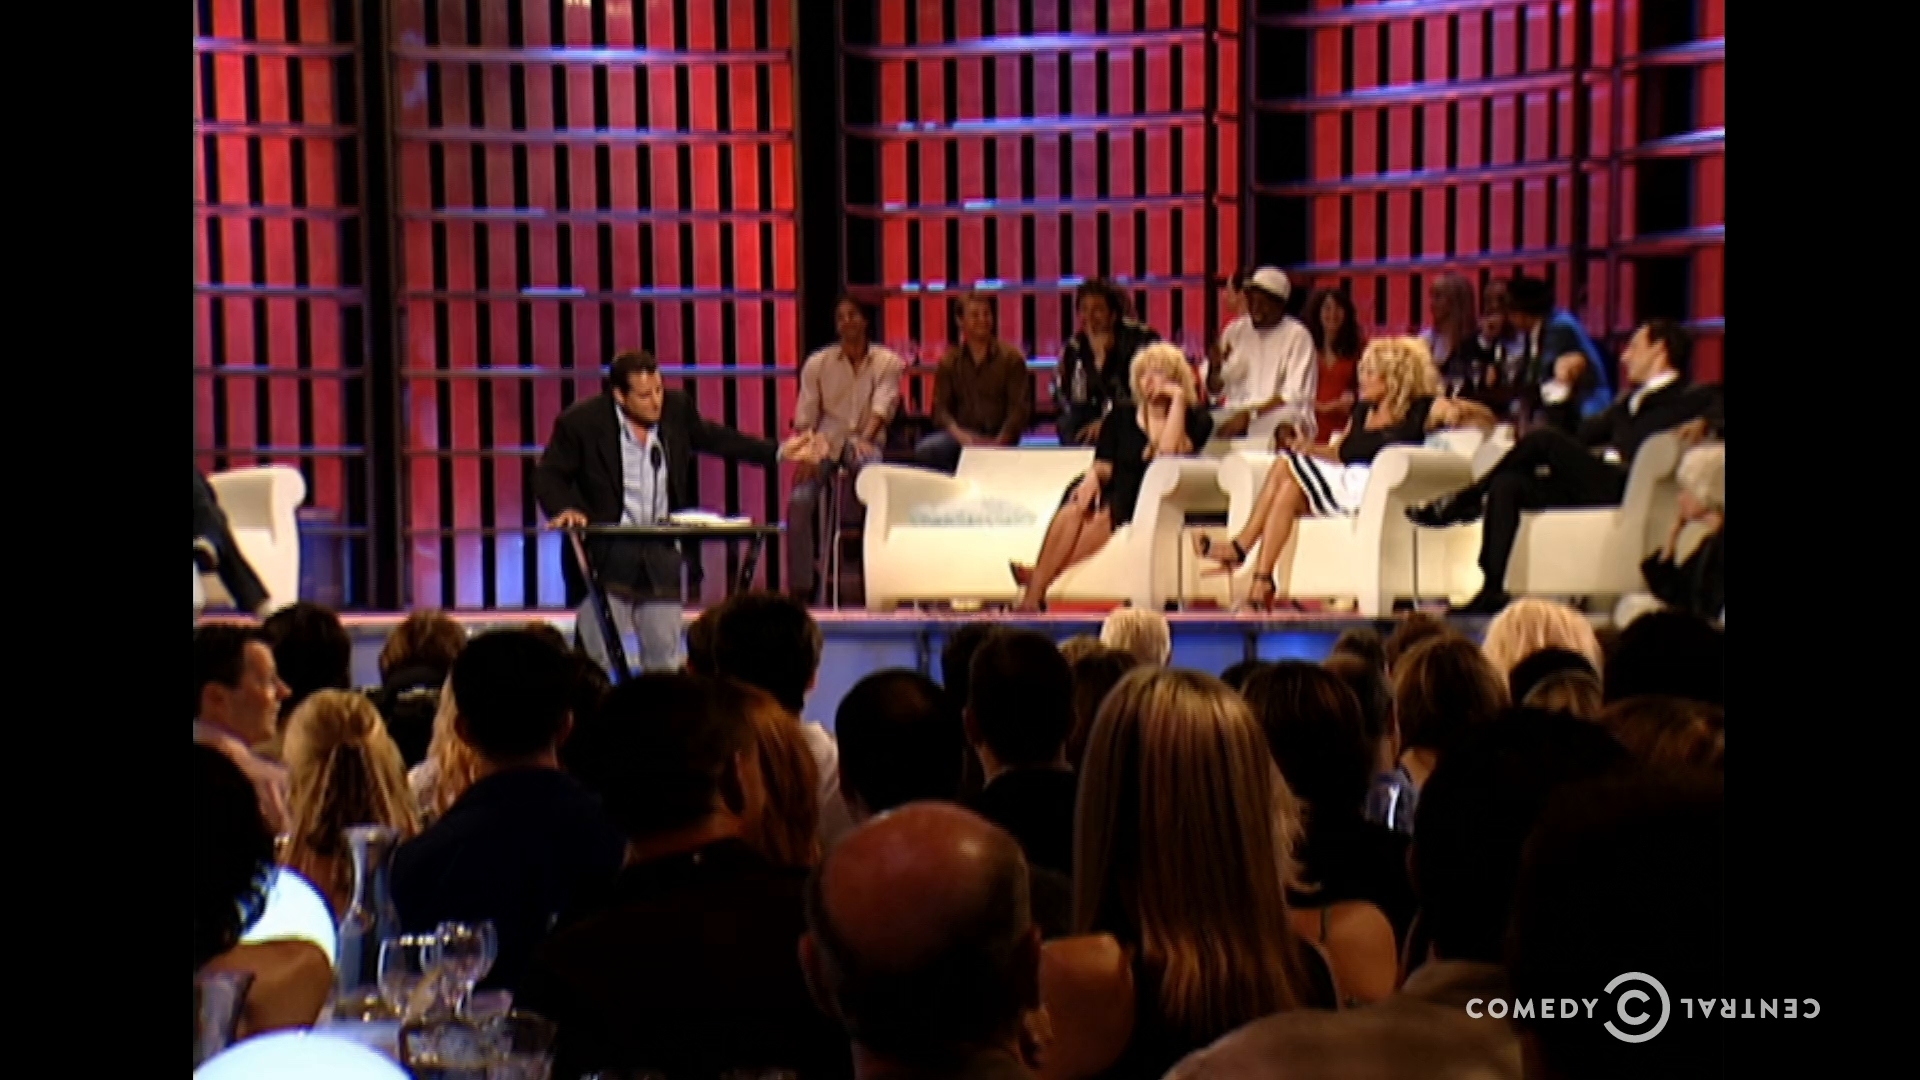 The Comedy Central Roast of Pamela Anderson Uncensored